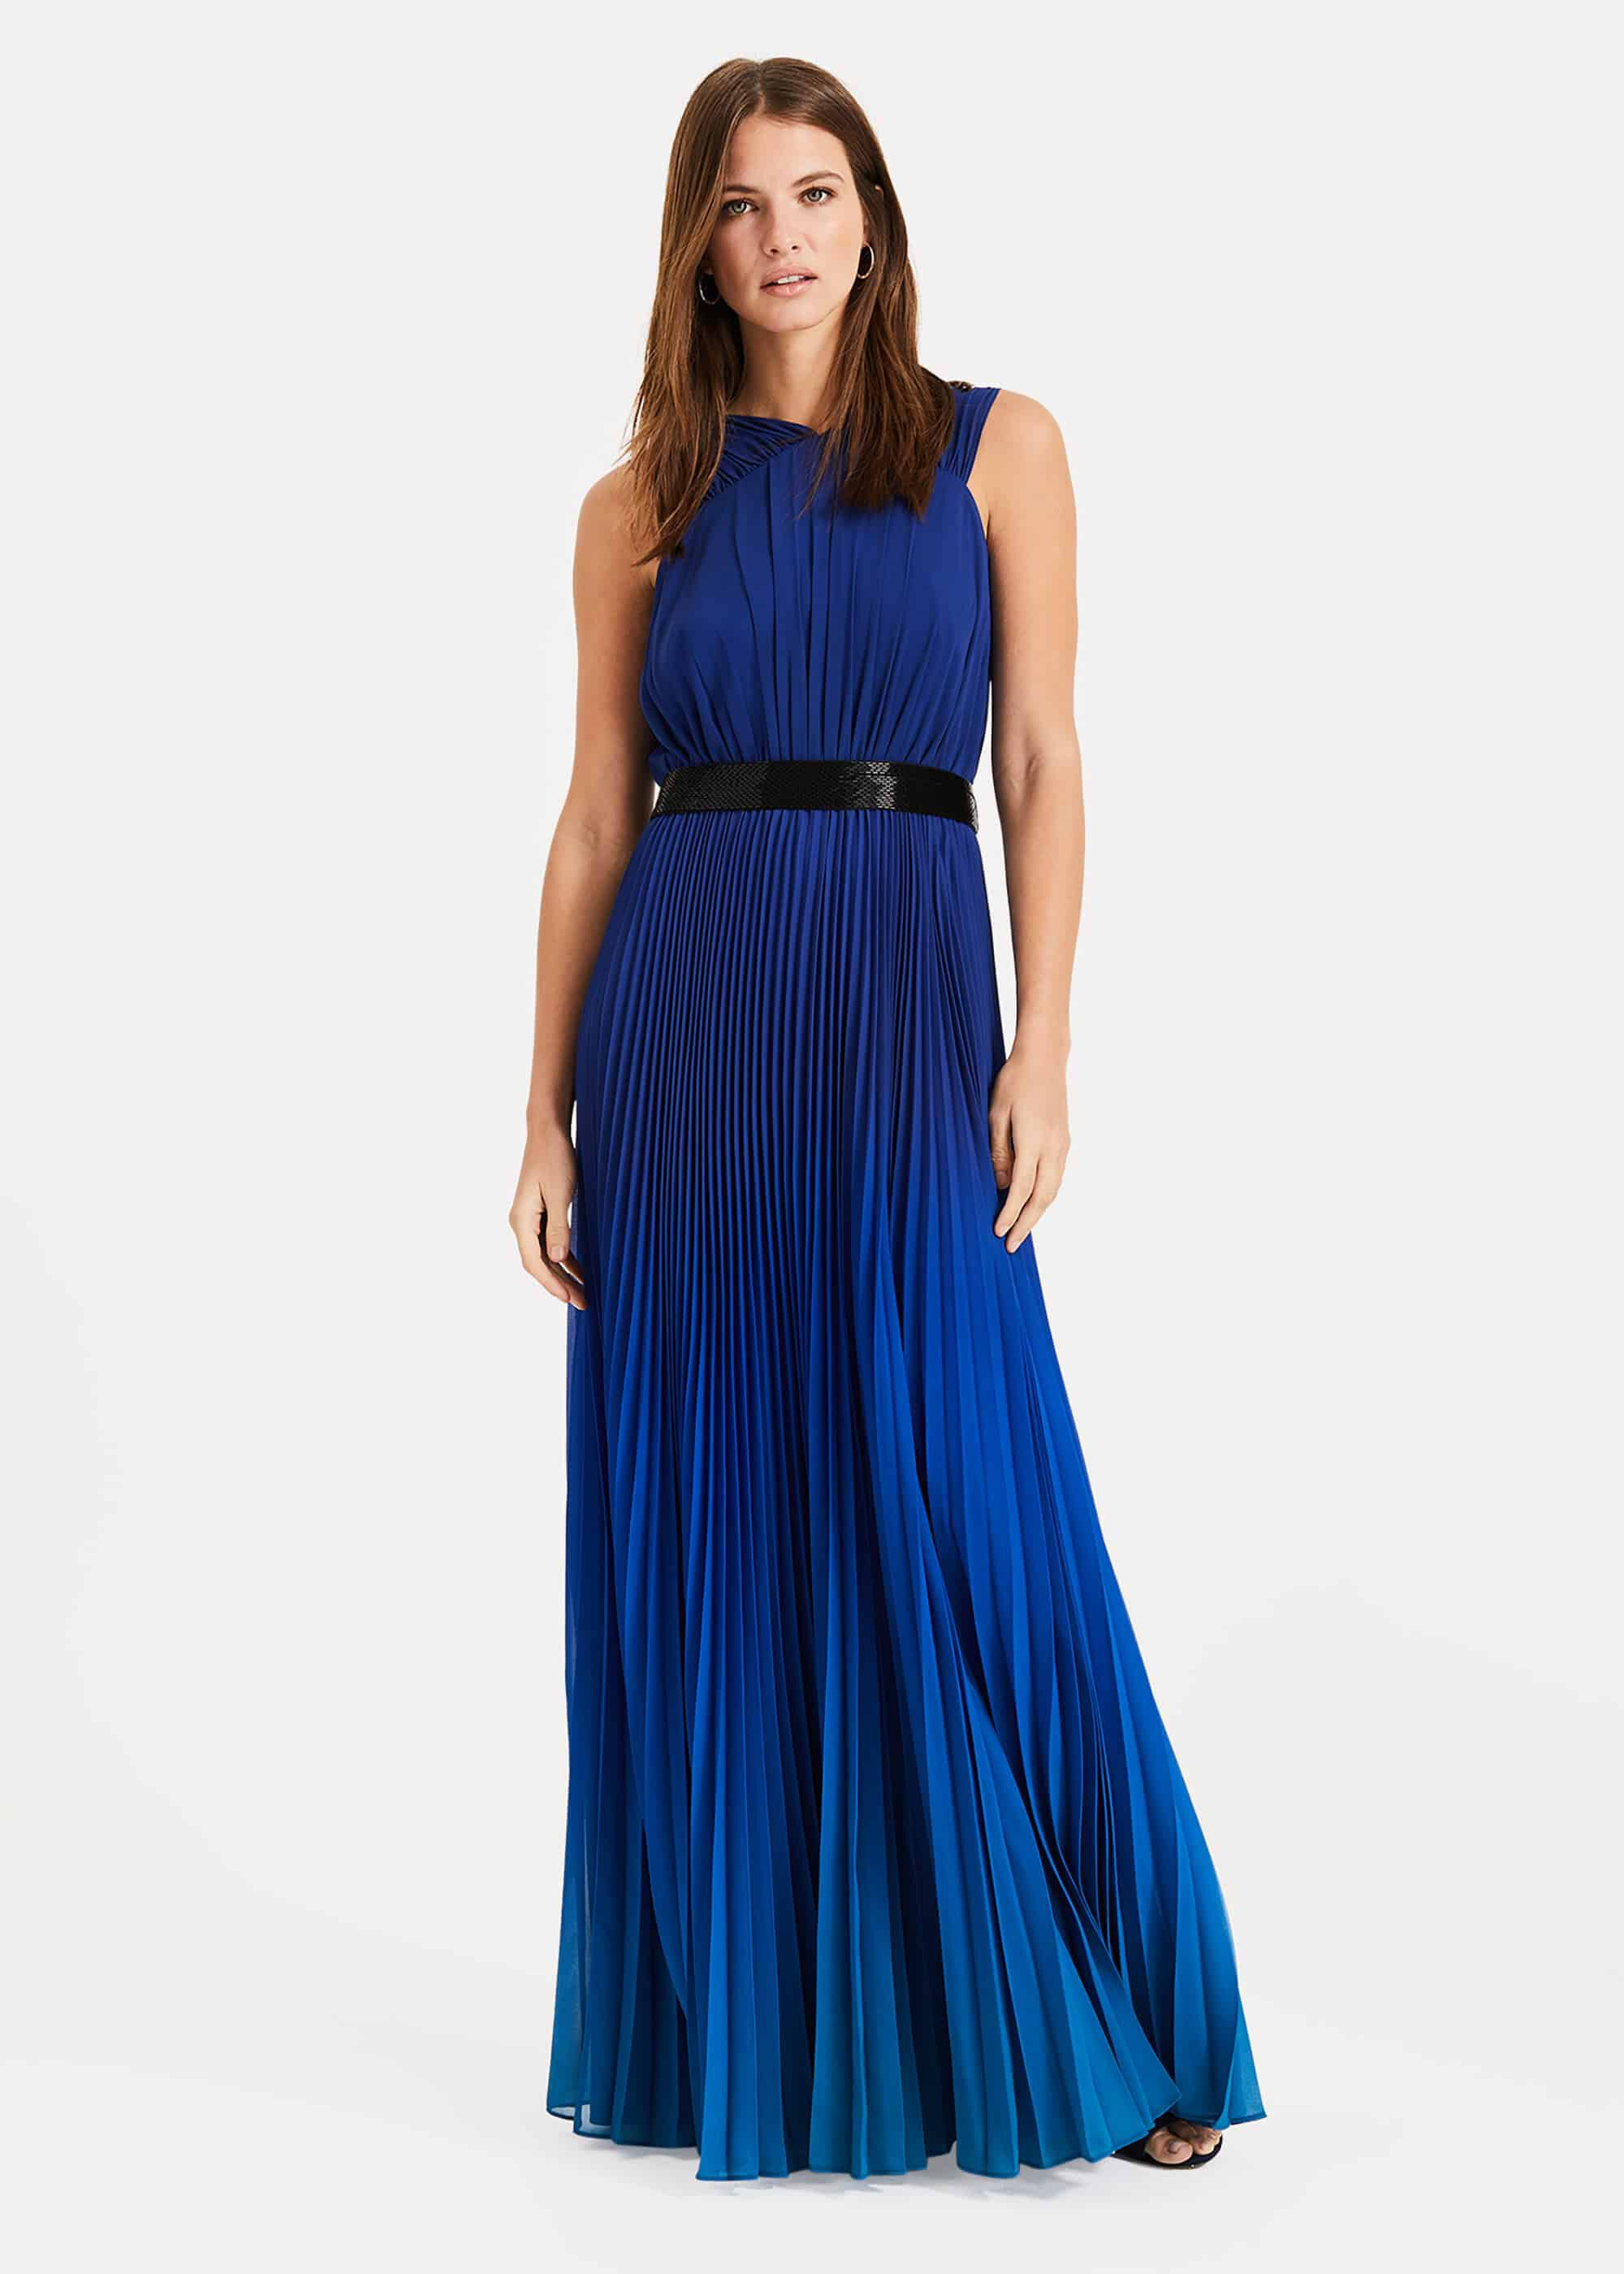 Phase Eight Elinor Belted Maxi Dress, Blue, Maxi